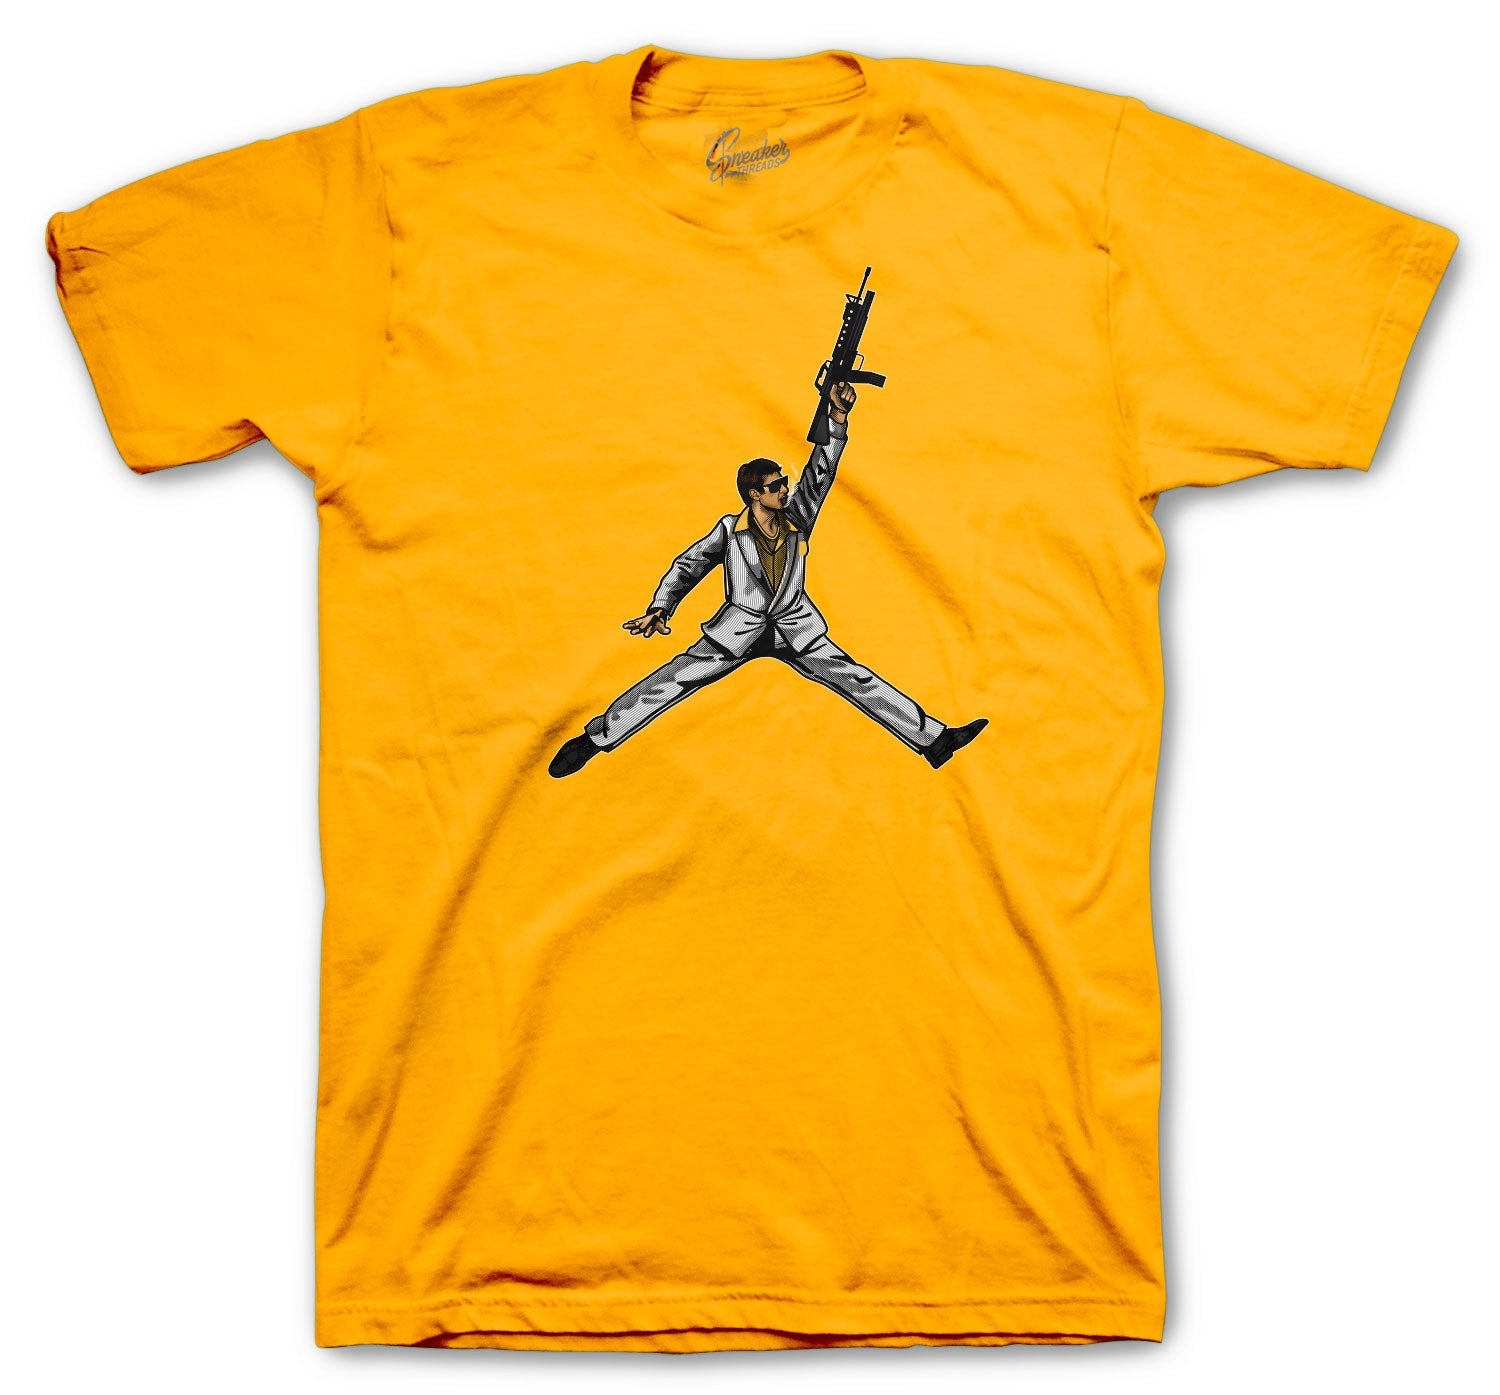 Jordan 9 University Gold Shirt -Air Tony - Gold